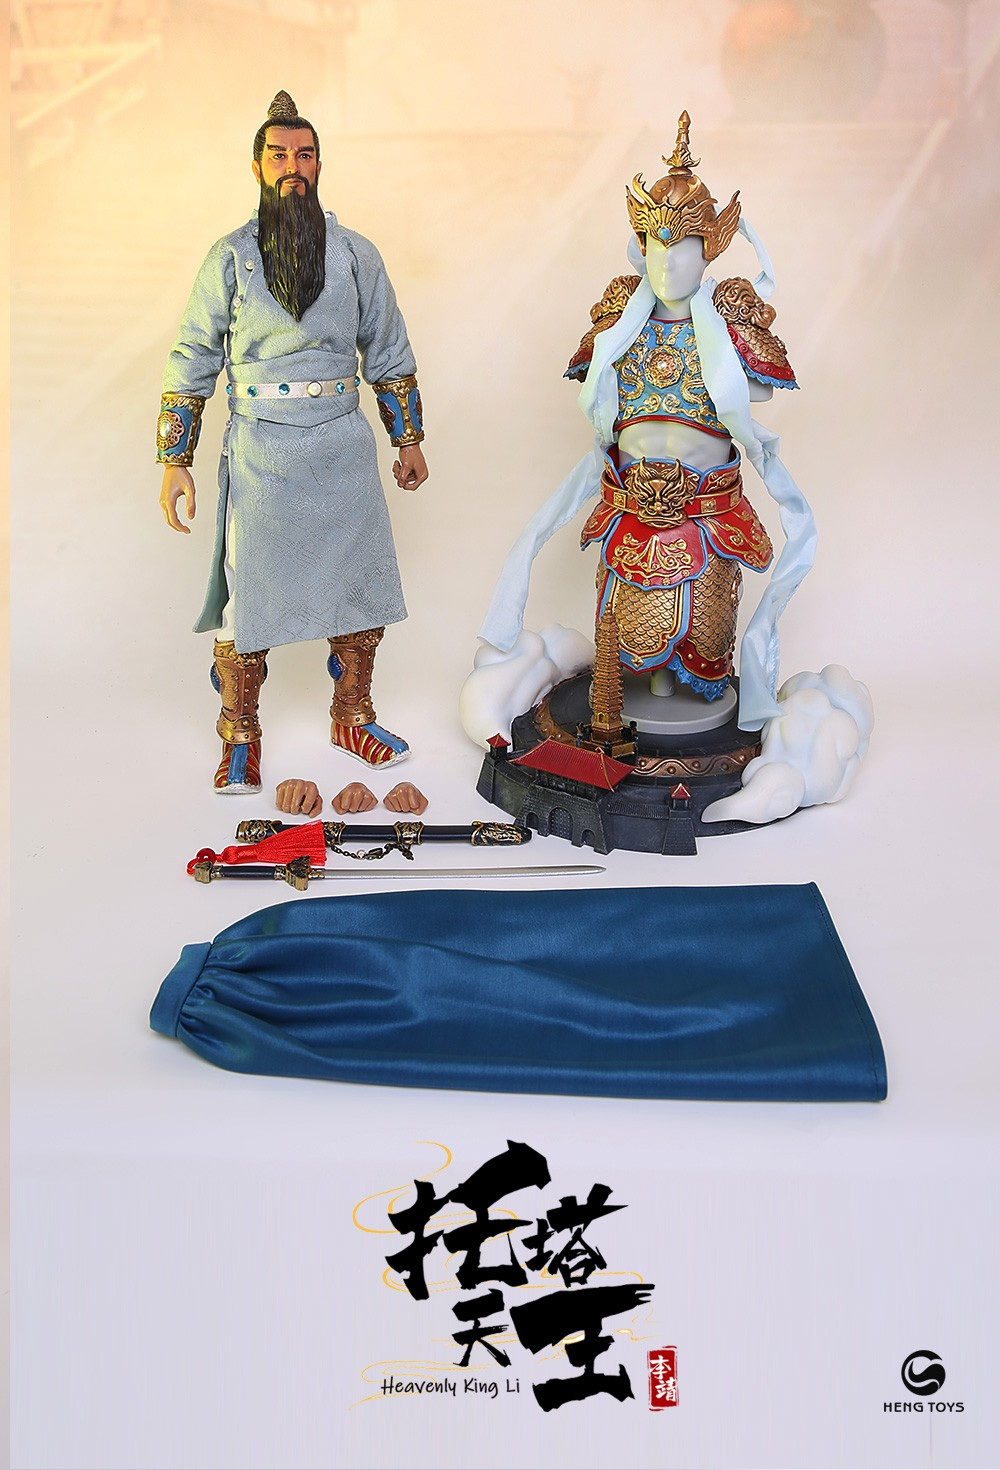 NEW PRODUCT: HENG TOYS: 1/6 Chinese Mythology Taoist Protector God Heavenly King Li, Li Tianwang action figure (PE-005) 14041010